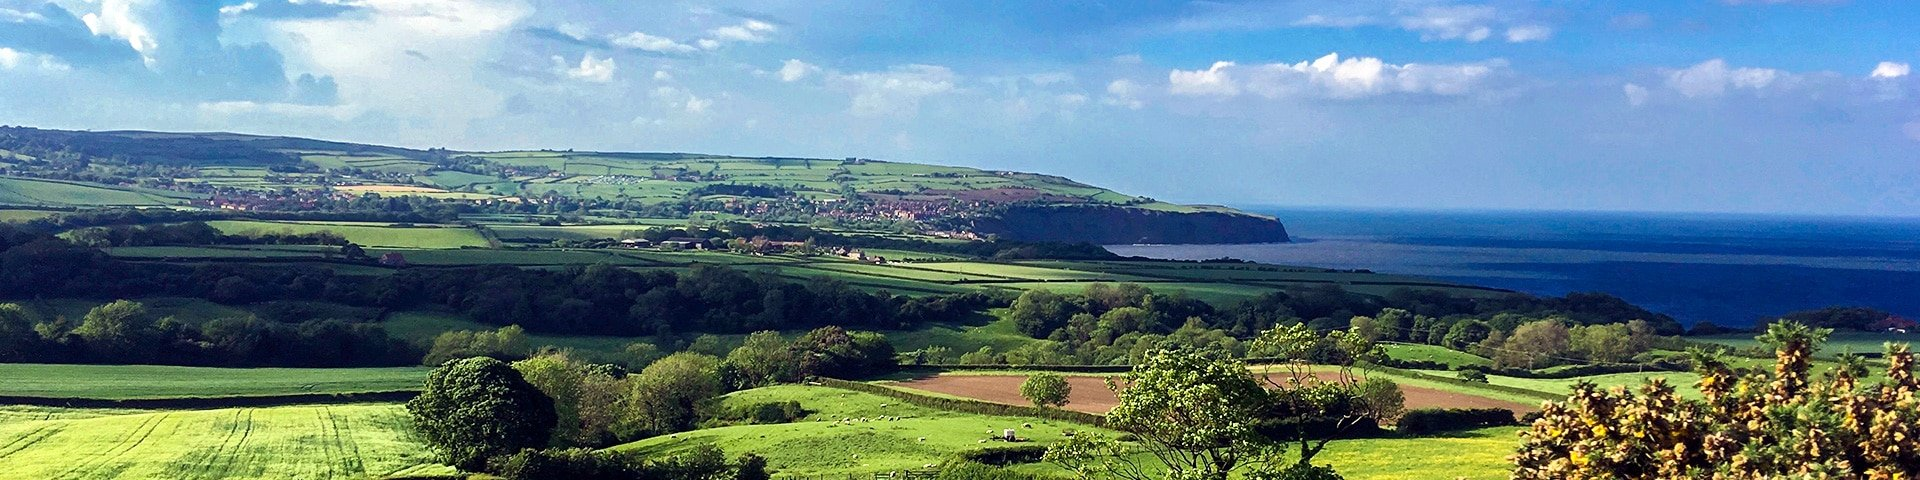 Panorama from the Ravenscar and Robin Hood's Bay walk in North York Moors, England